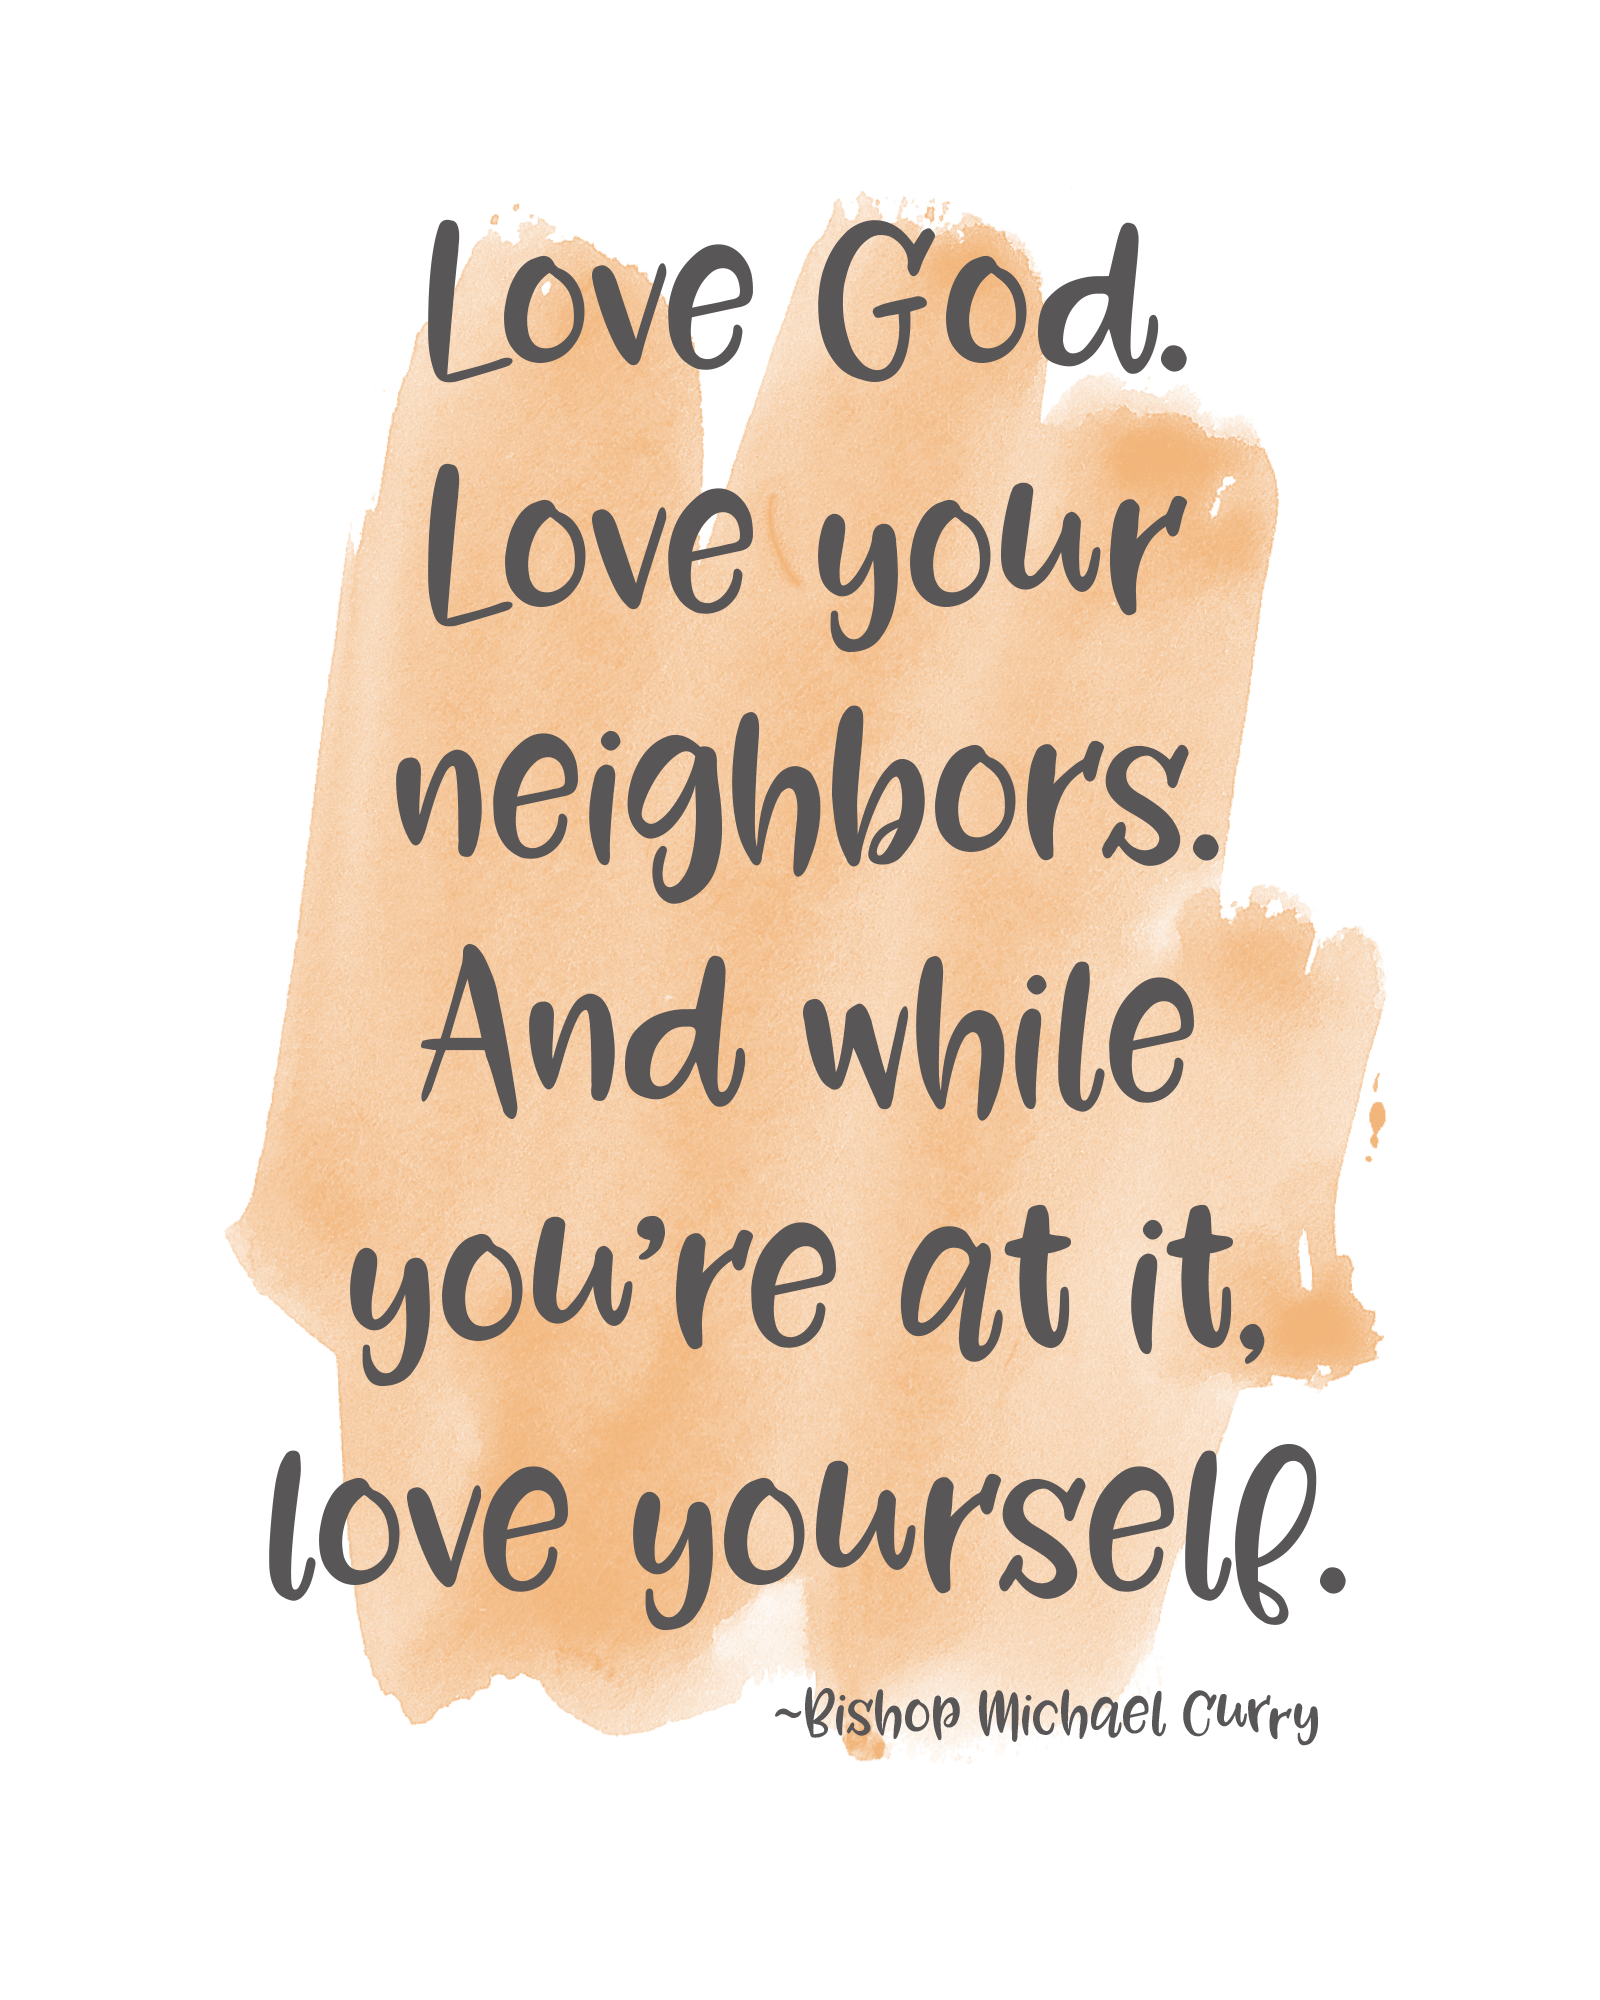 Love God Love Your Neighbors And While You Re At It Love Yourself Bishop Michael Curry Neighbor Quotes Inspirational Quotes Download Love Yourself Quotes